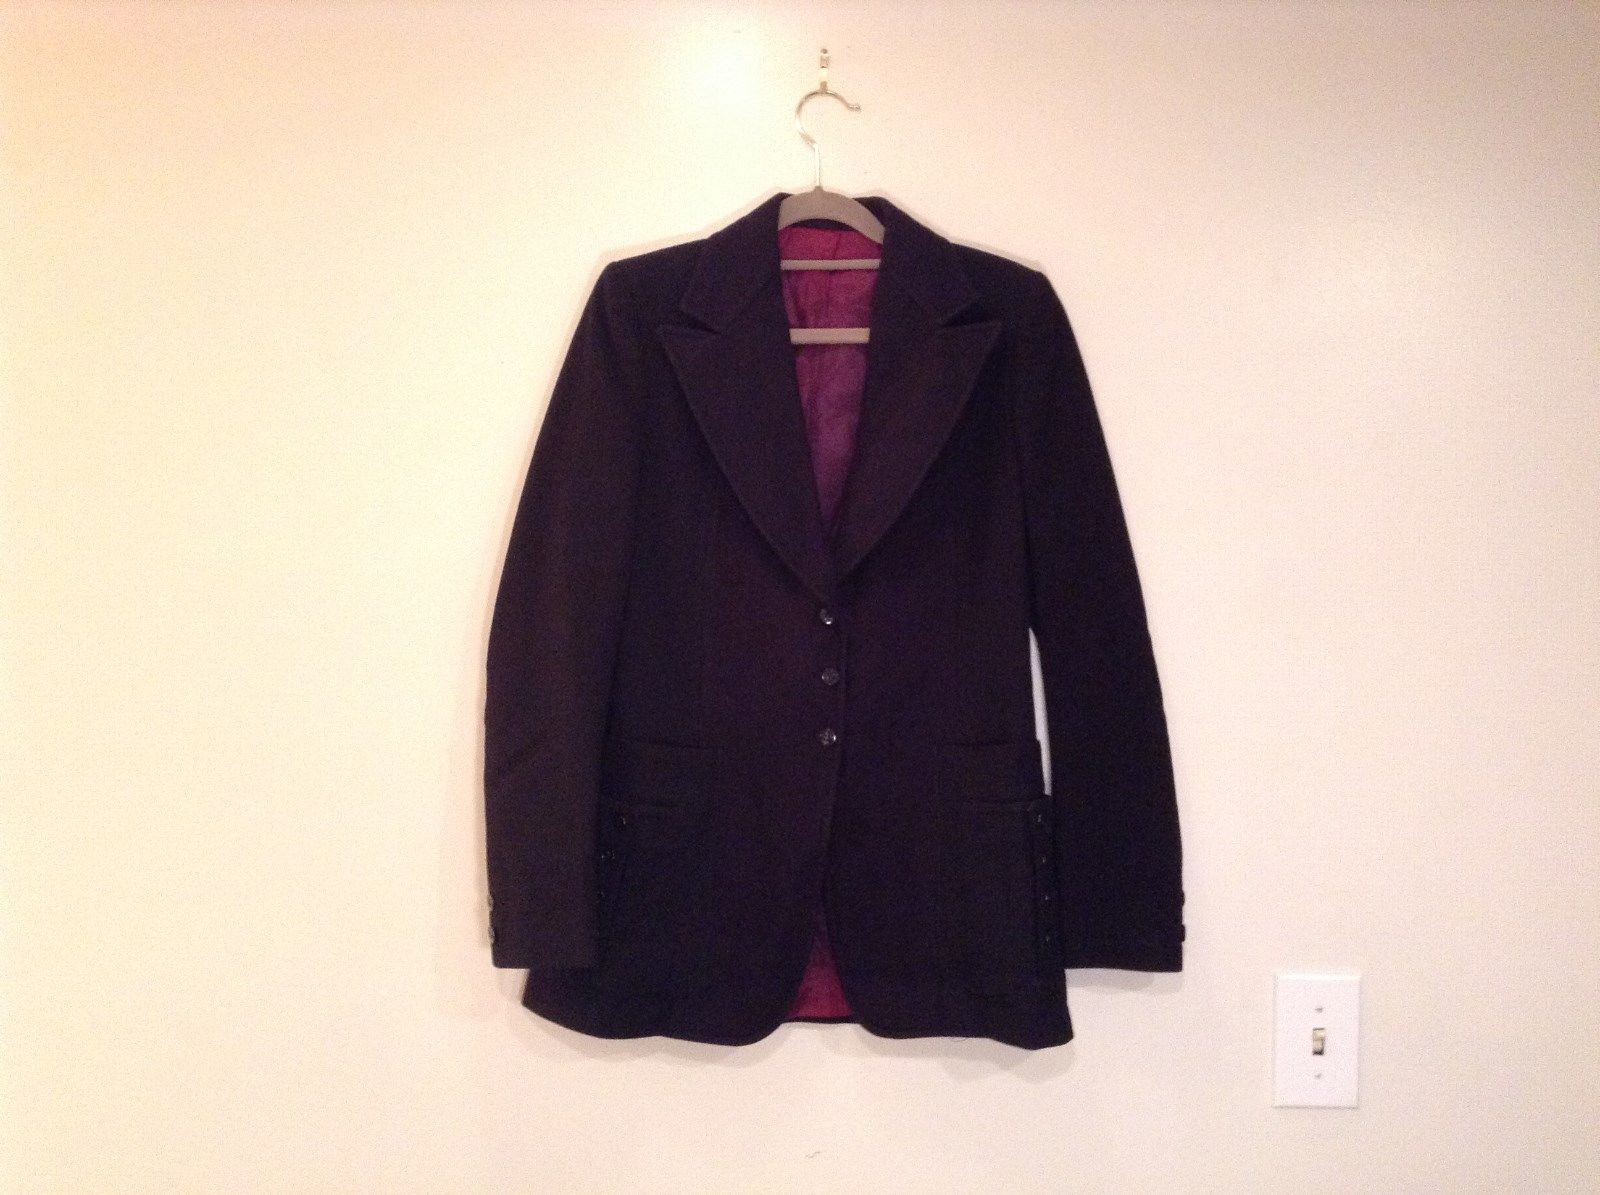 Fully Lined Black Blazer No Tags Pockets 3 Button Closure Measurements Below